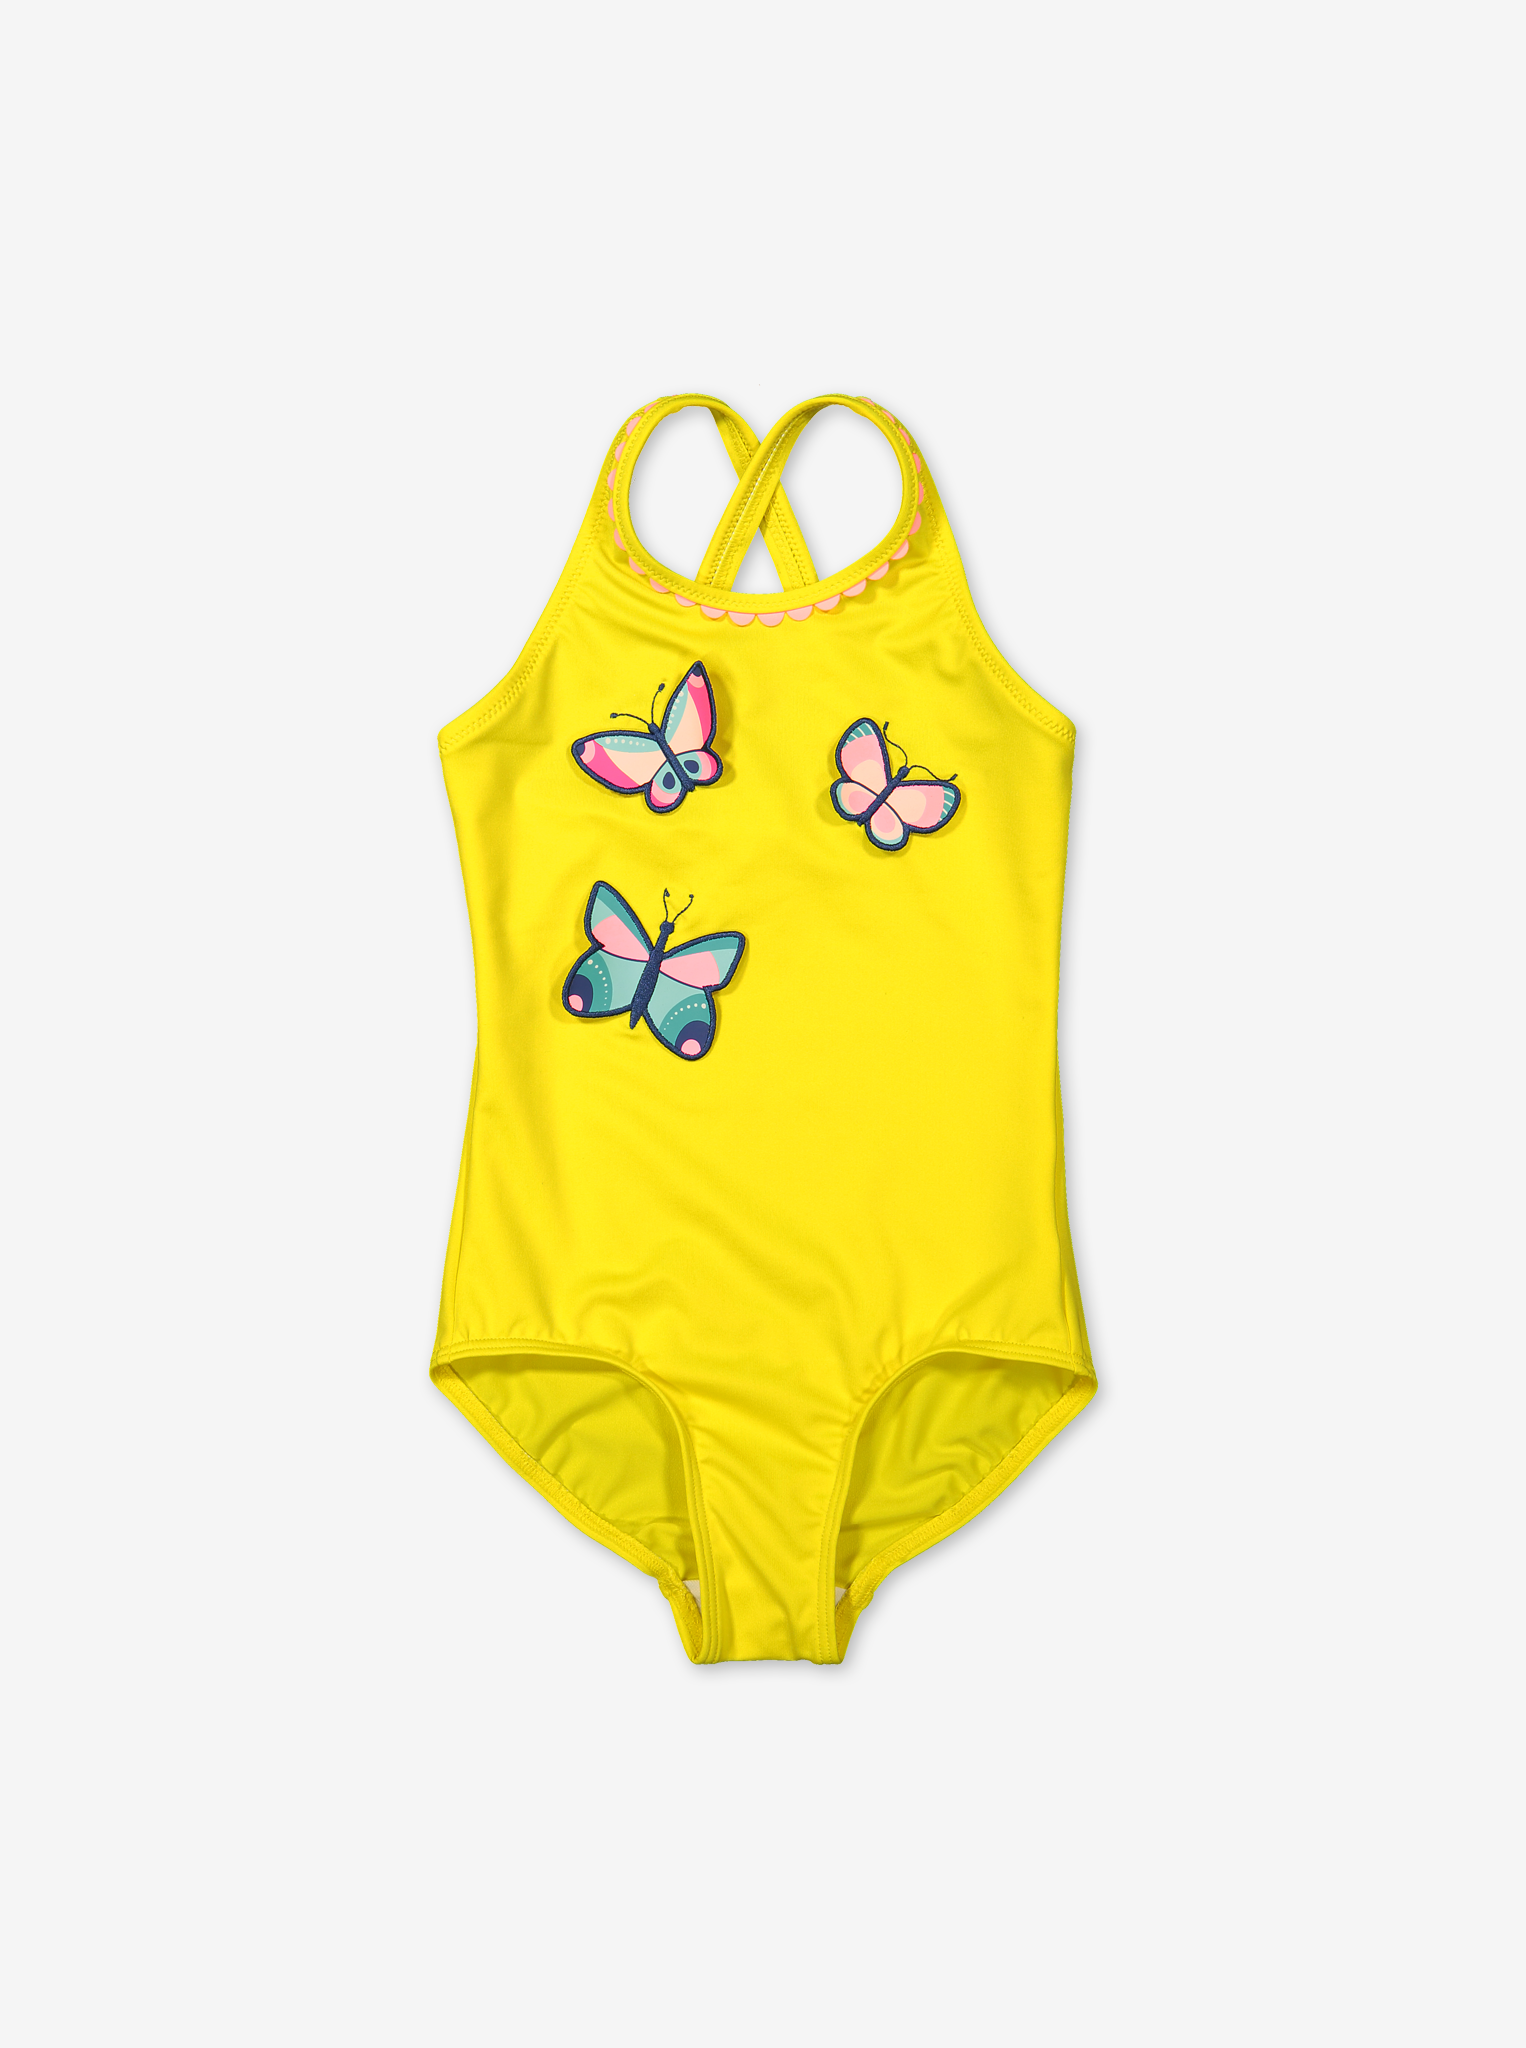 Swimsuit with butterfly applique-Girl-1-6y-Yellow